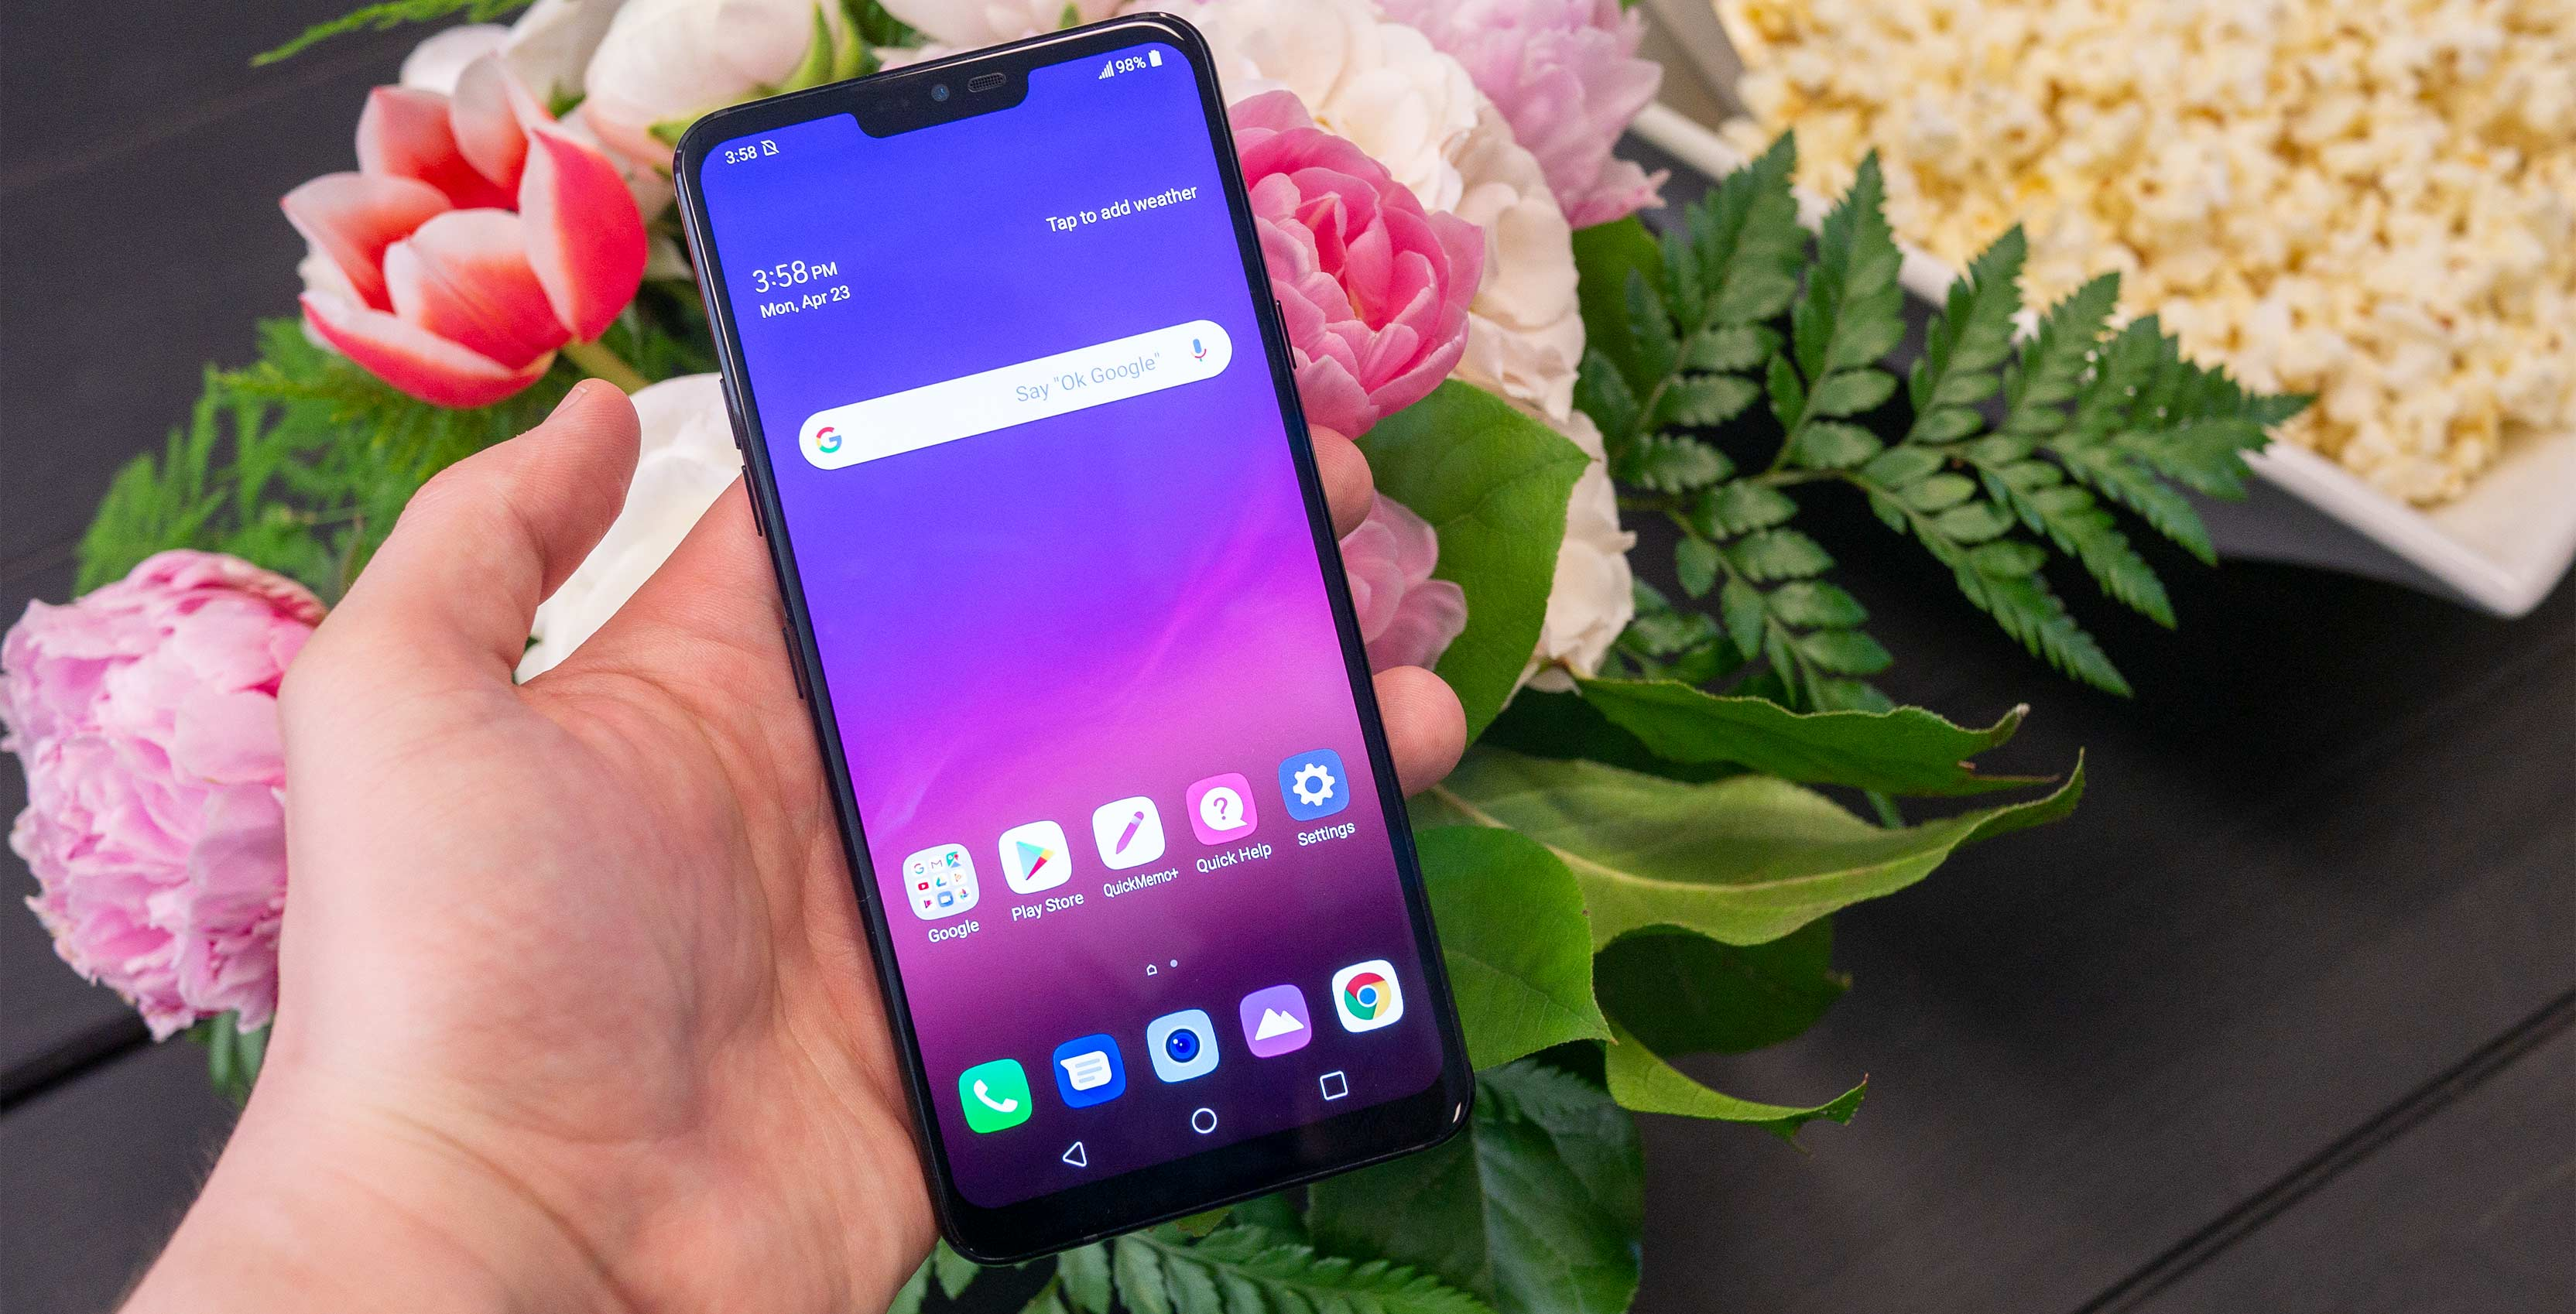 LG G7 ThinQ Hands-on: 'ThinQ' of the possibilities